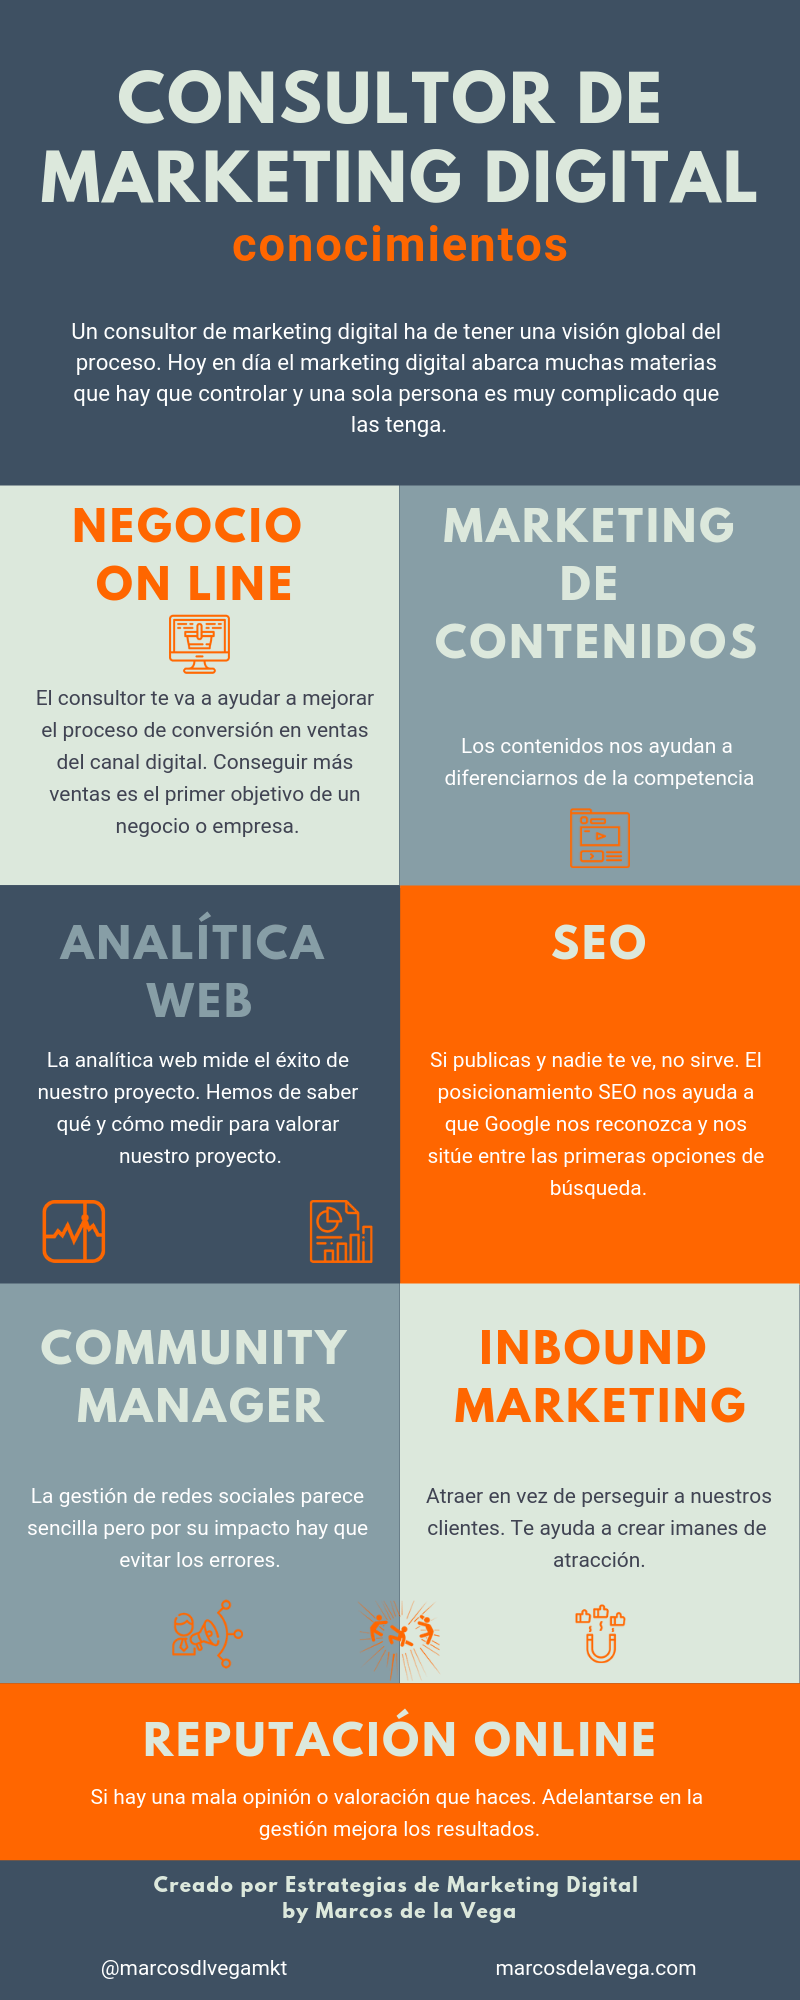 Consultor de Marketing Digital: conocimientos #infografia #infographic #marketing